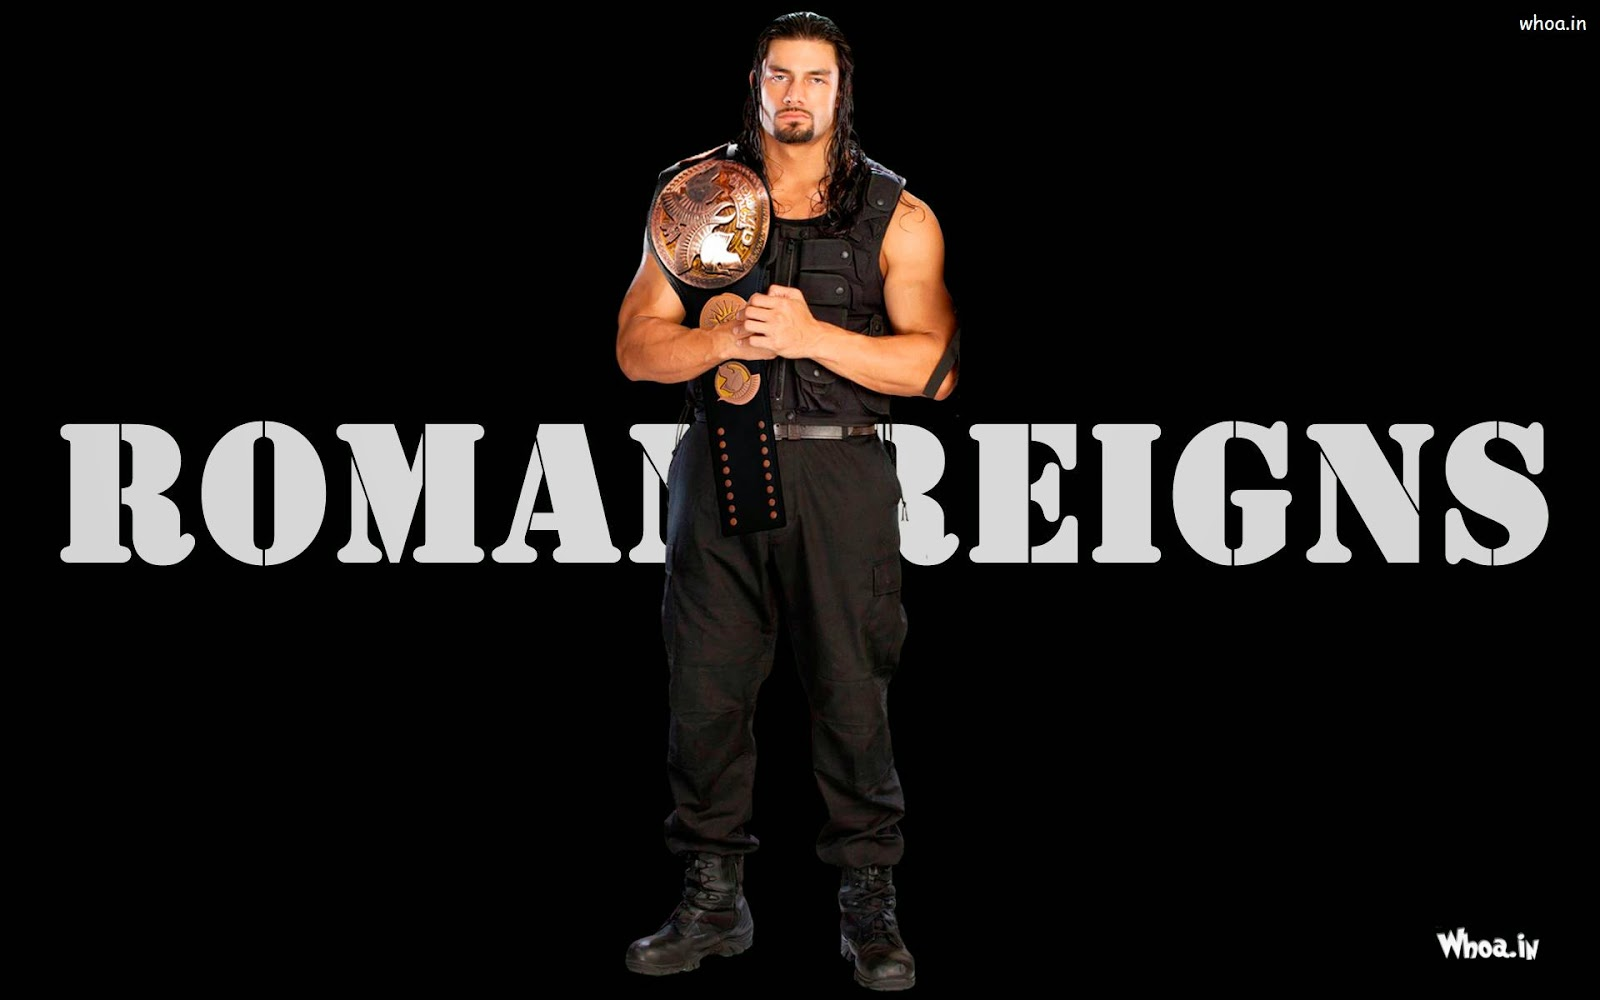 Roman Reigns | Free wide wallpapers download